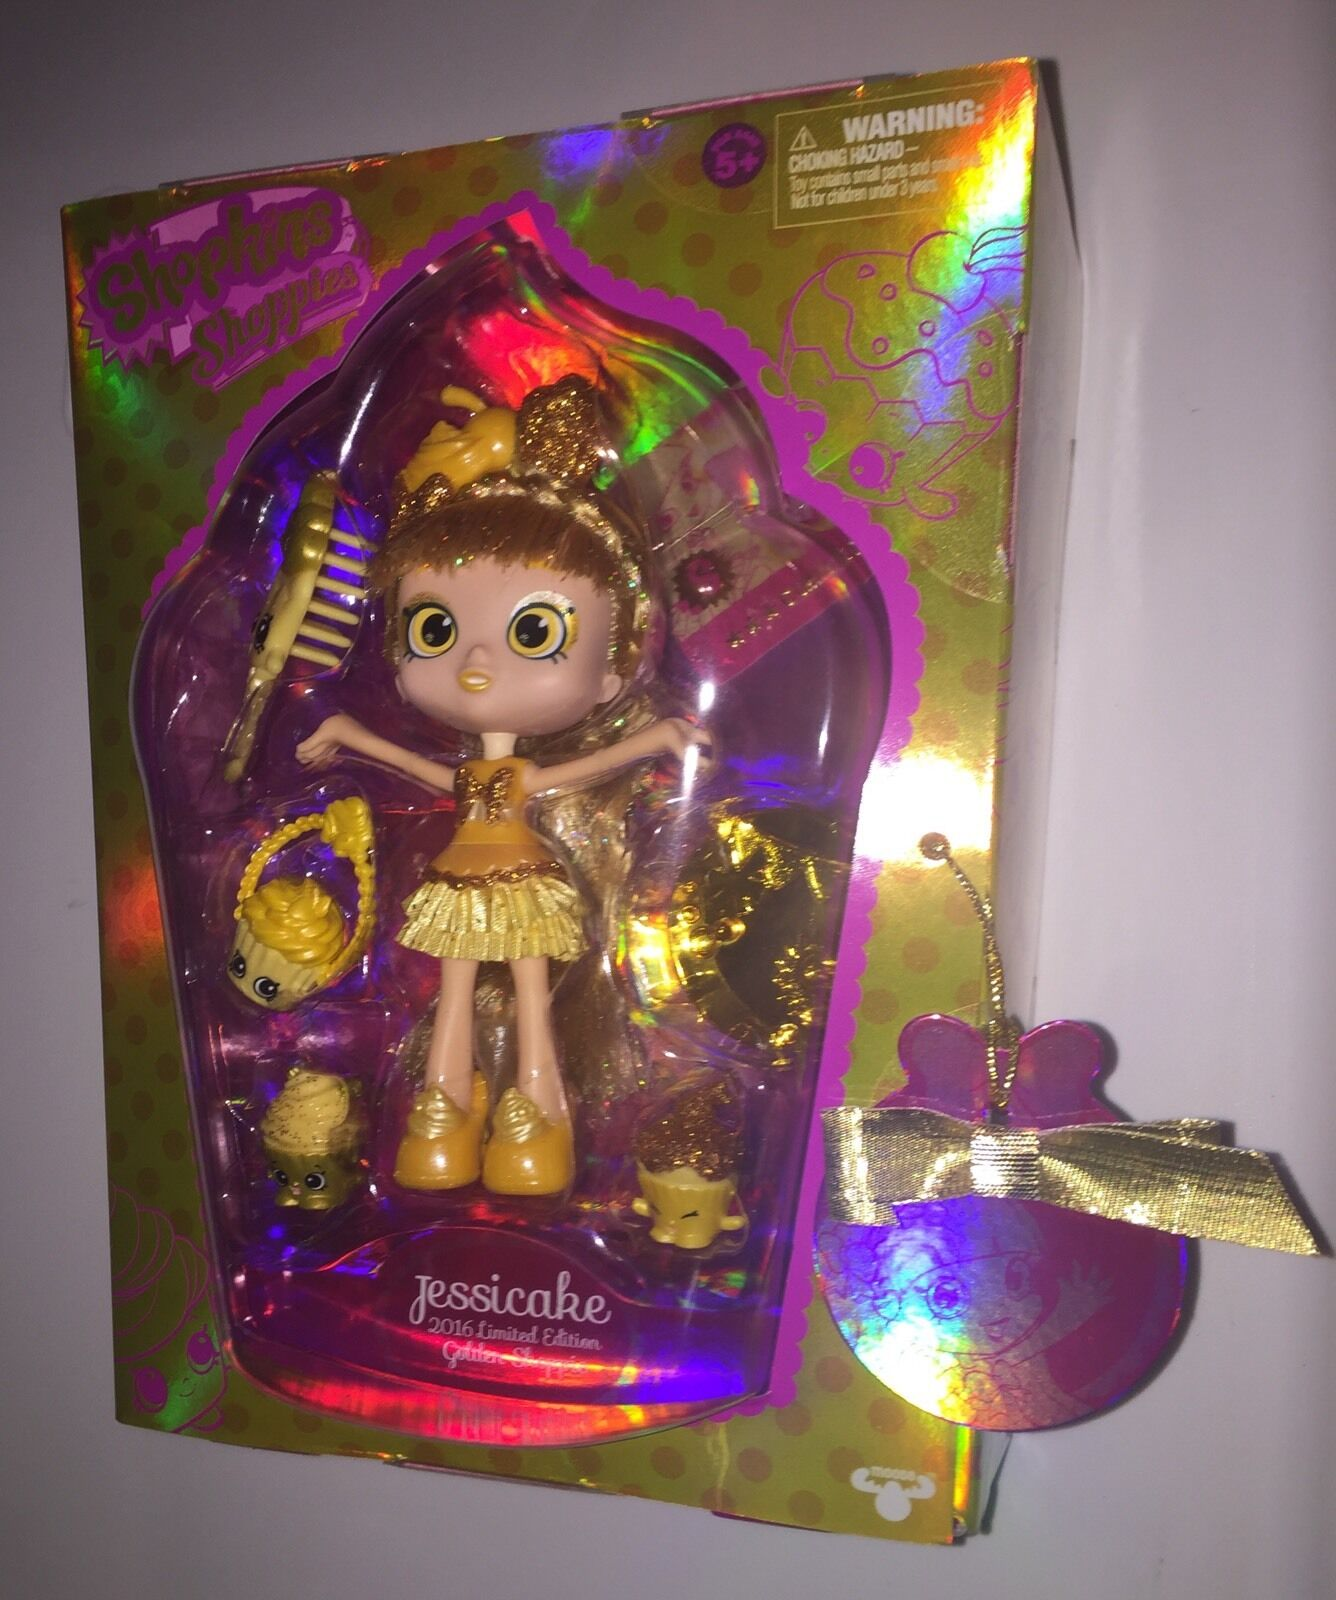 SDCC 2016 EXCLUSIVE SHOPKINS SHOPPIES GoldEN JESSICAKE LIMITED EDITION 1532 2000